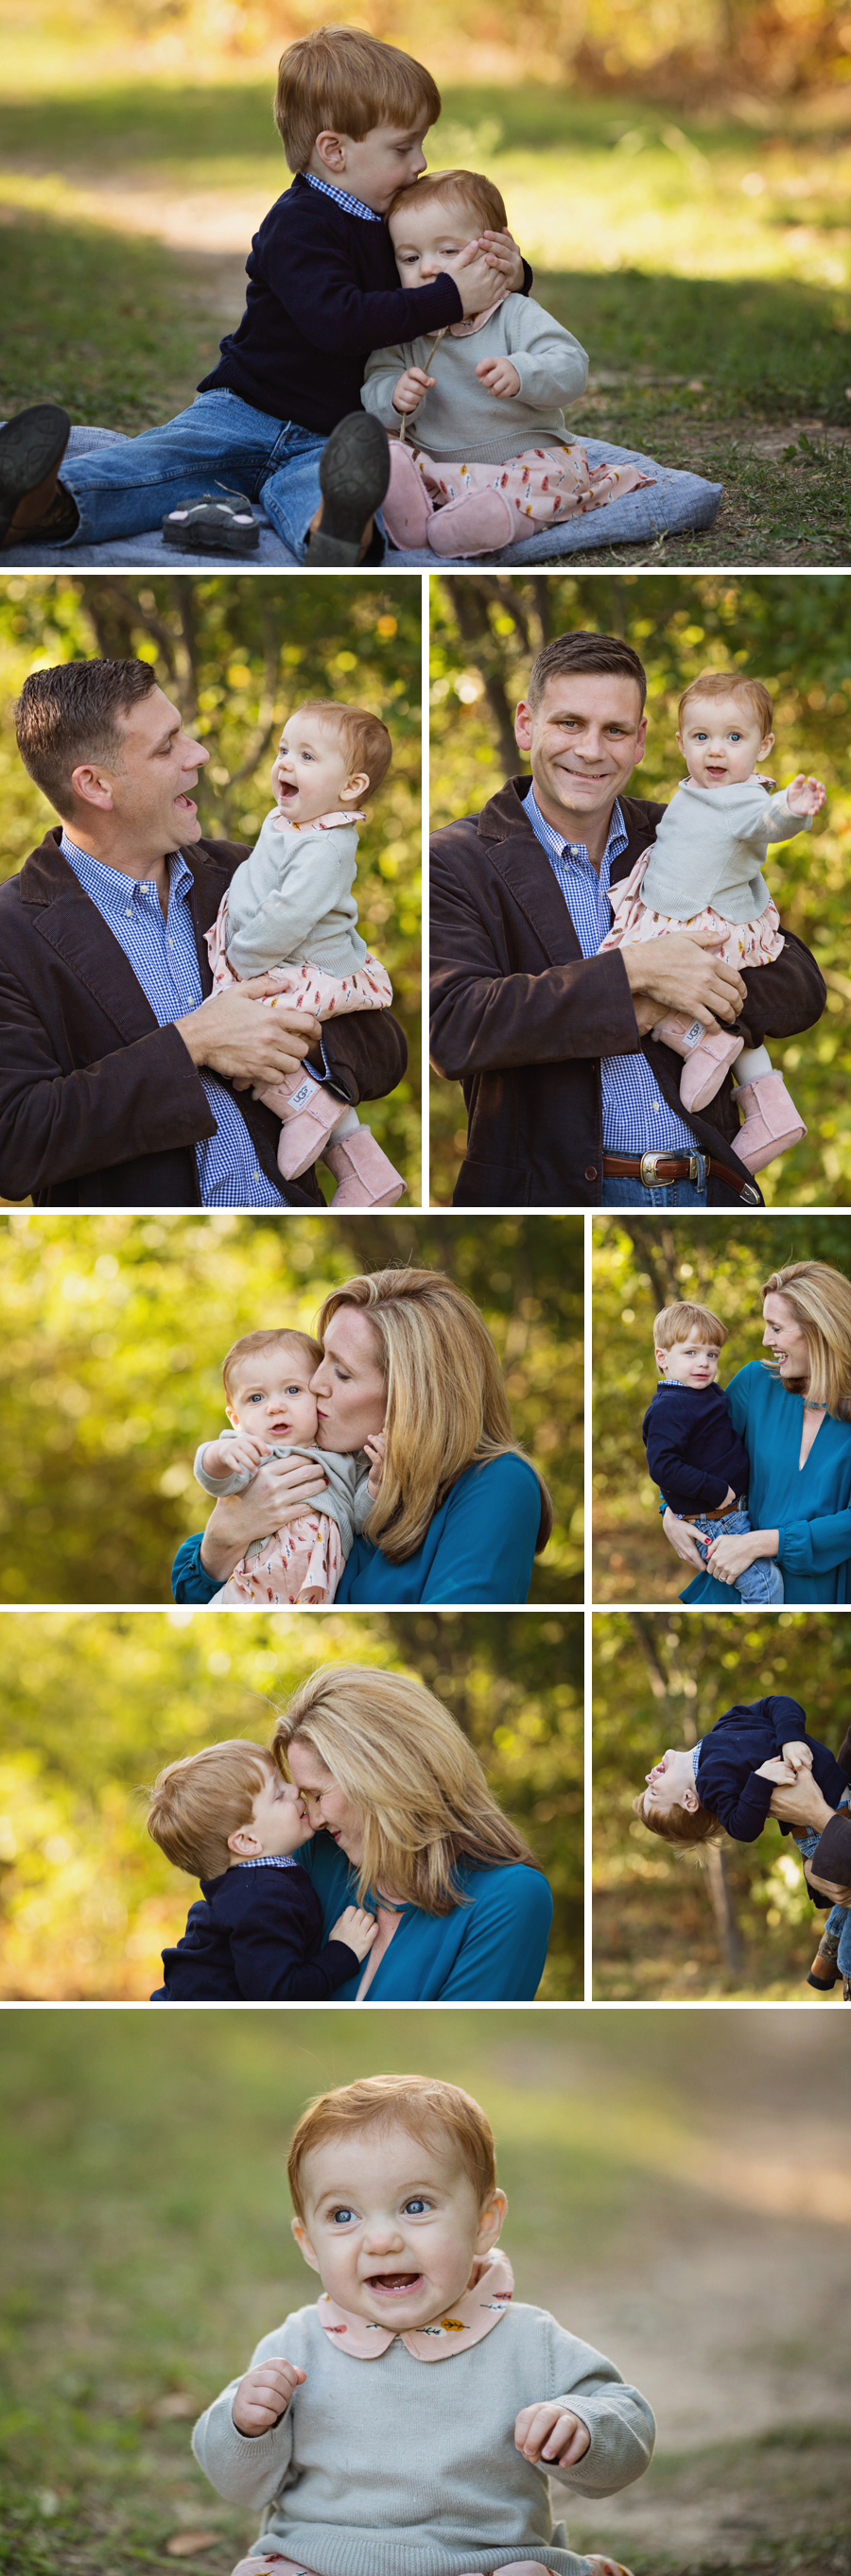 Dallas-Family-PhotographerG007